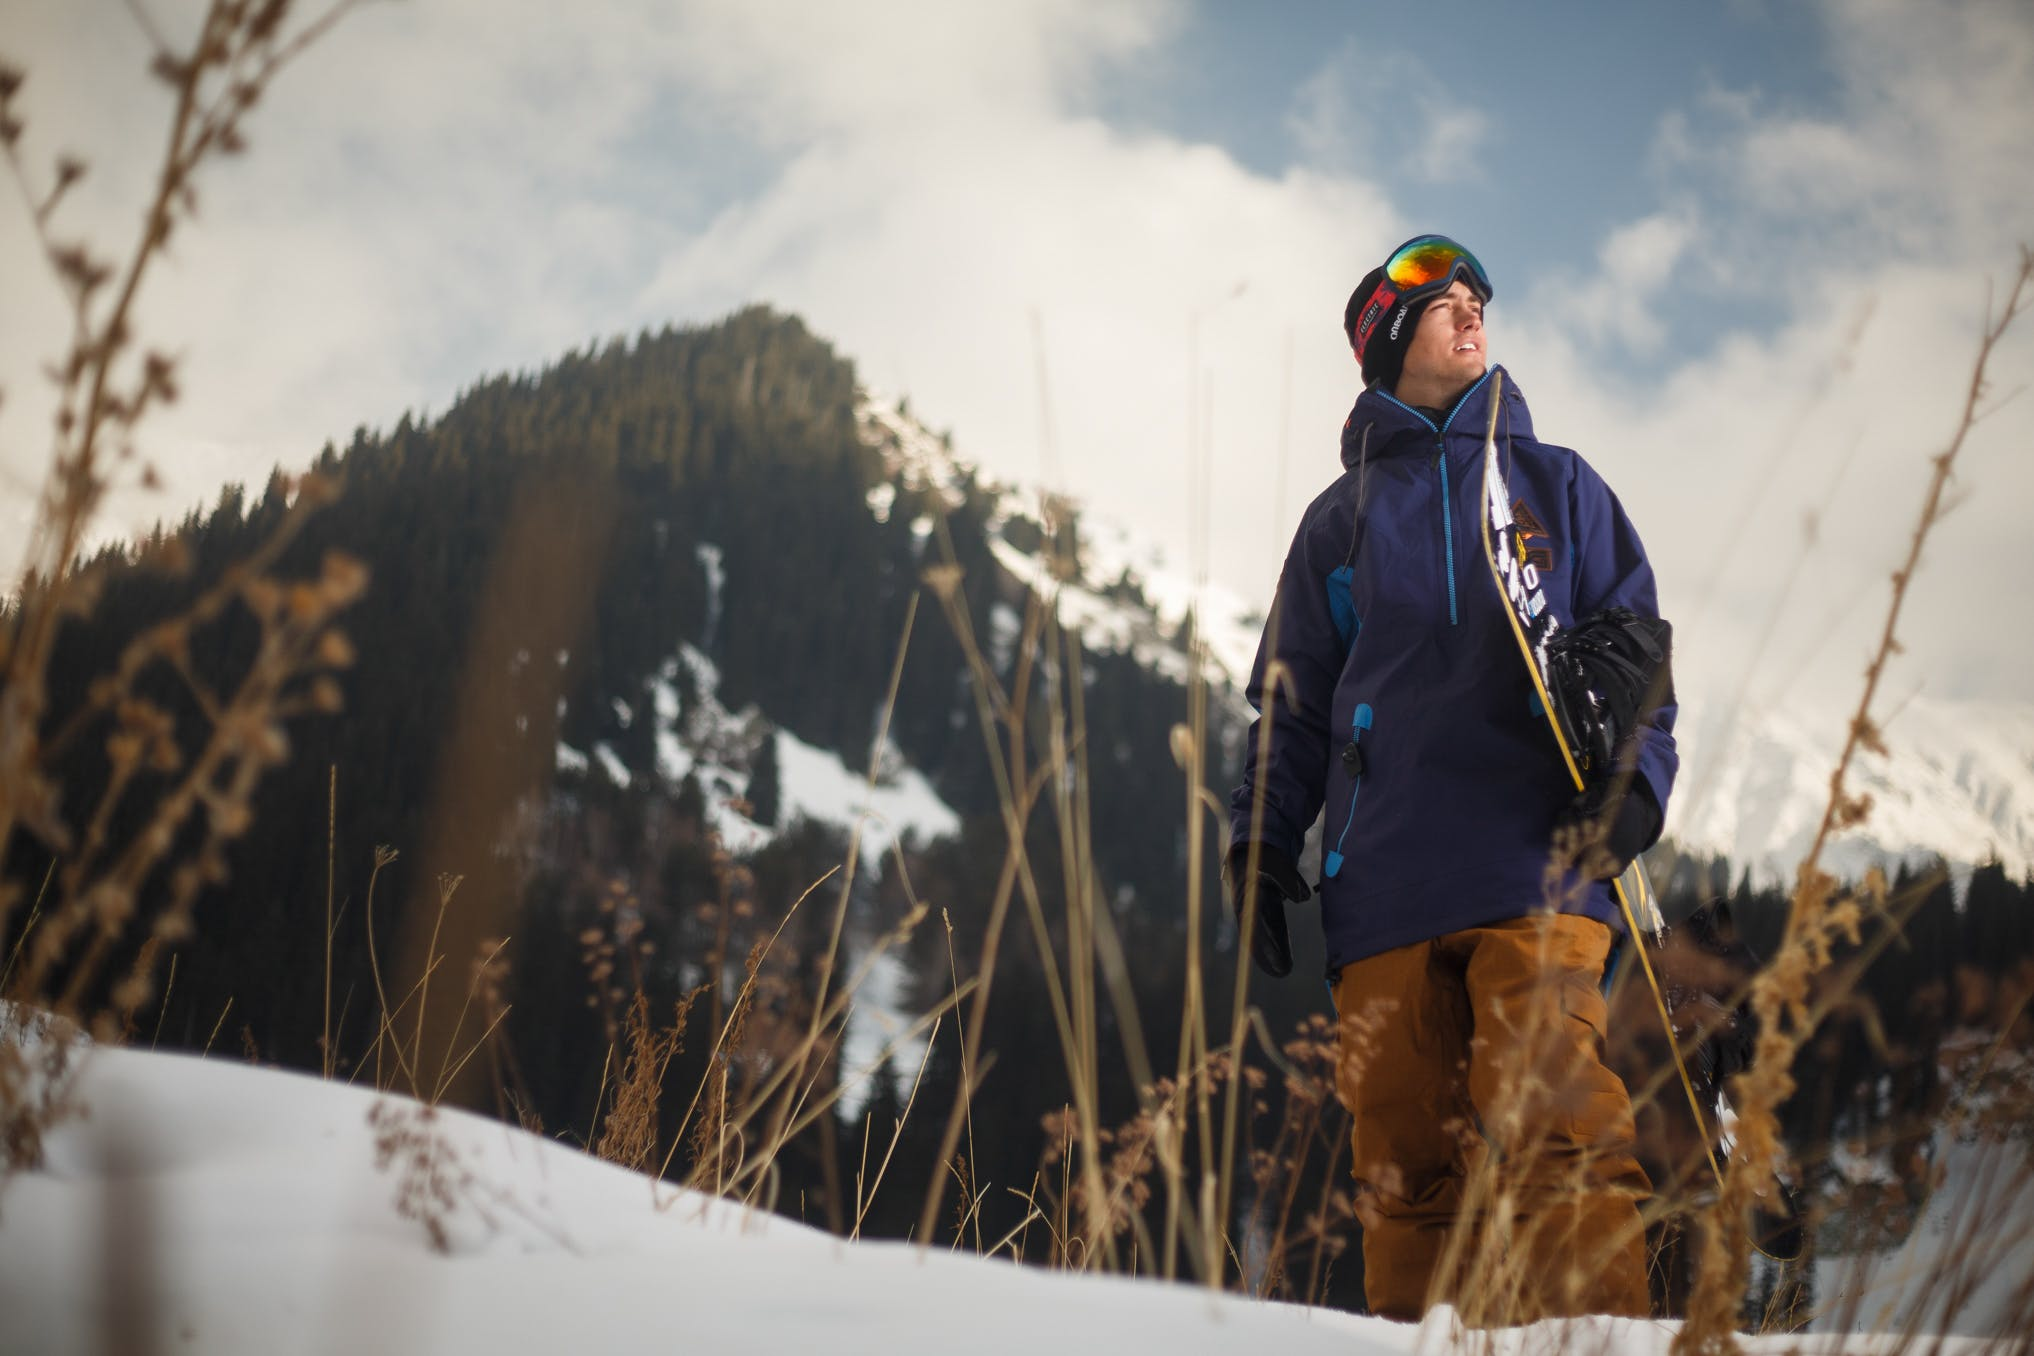 Low Angle Photography of Man Wearing Blue Jacket Carrying Snow Board